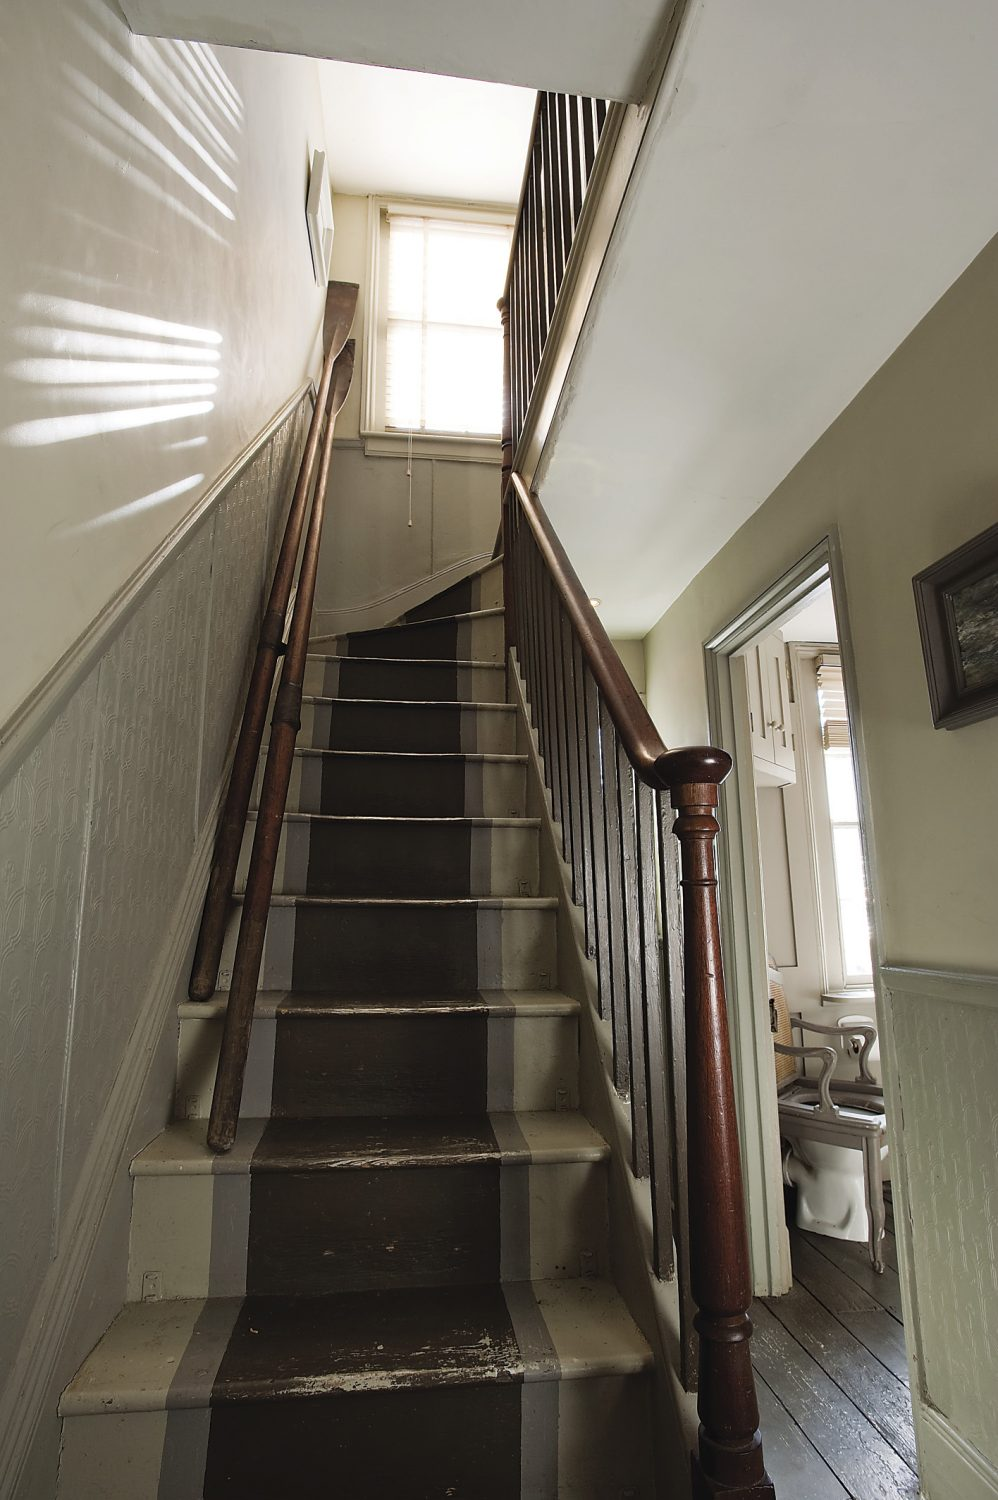 The final flight of stairs lead up to the attic room